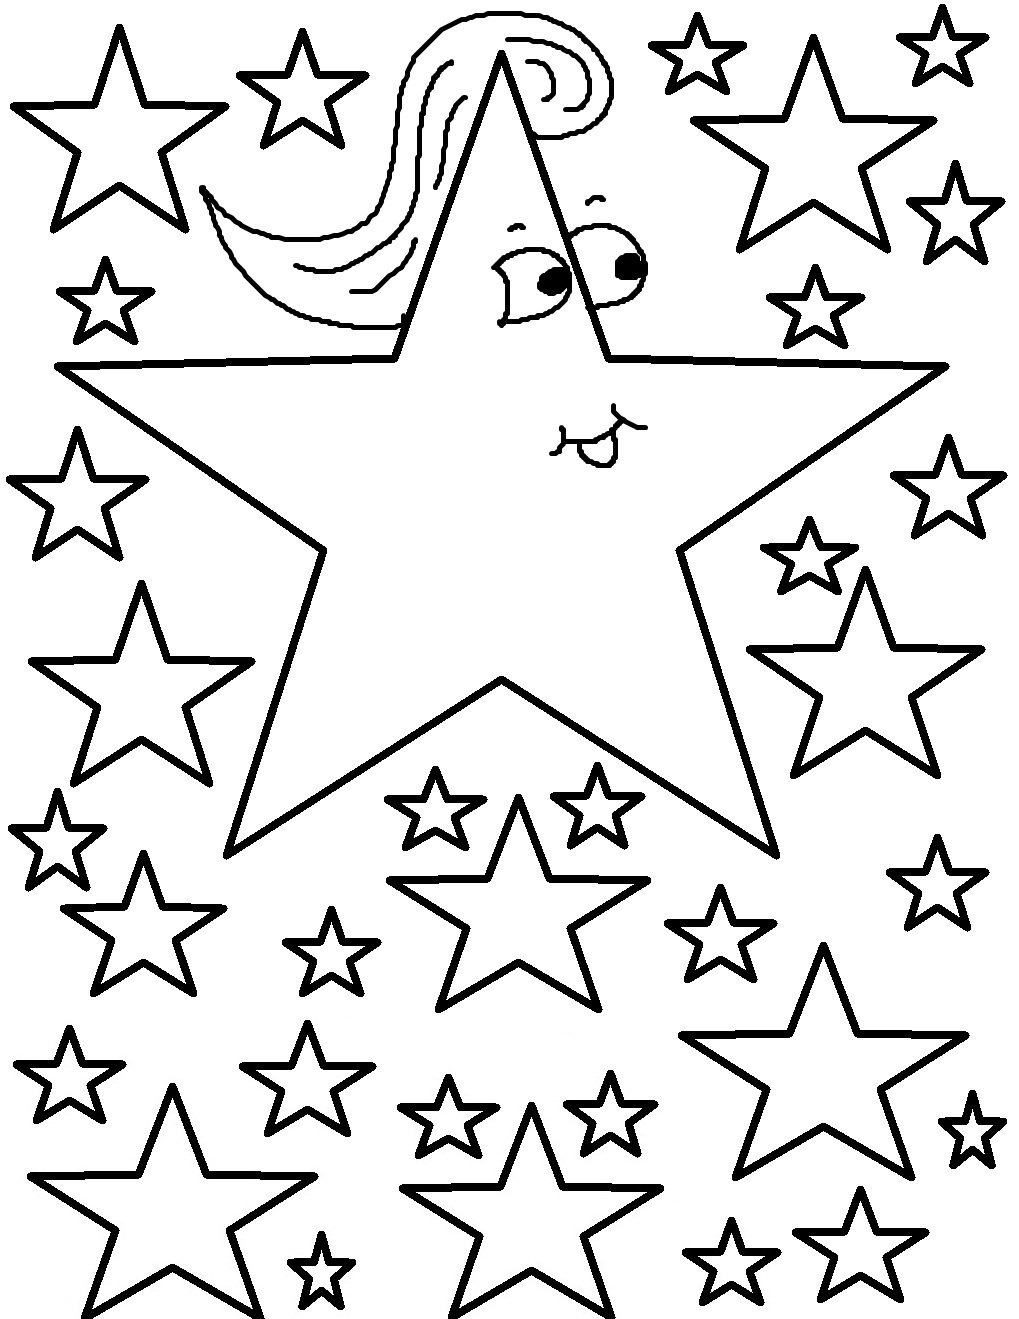 Free Printable Star Coloring Pages For Kids - Free Printable Christmas Star Coloring Pages